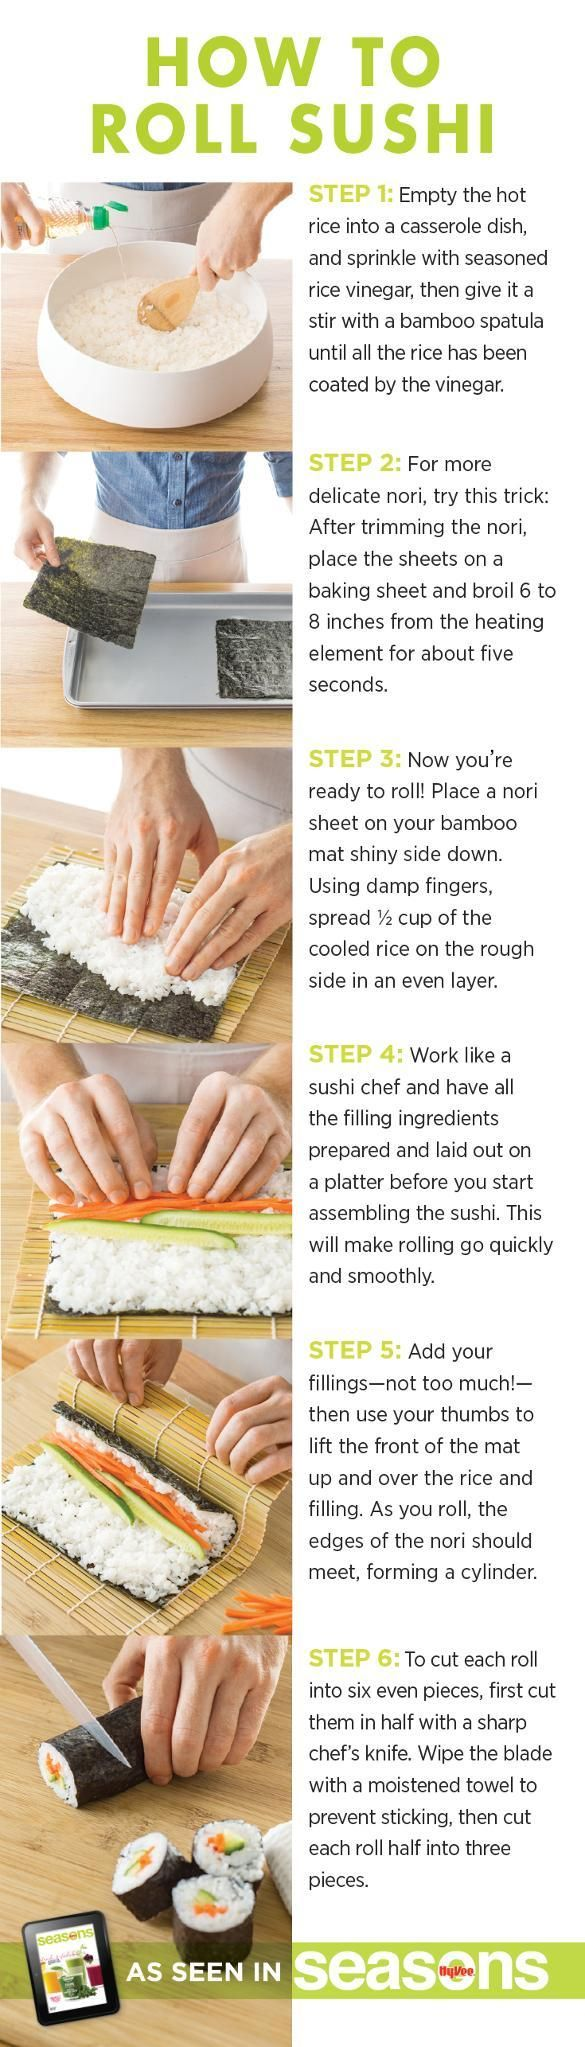 As With Anything, Sushi Takes Practice So Don't Worry About Being Perfect  Your